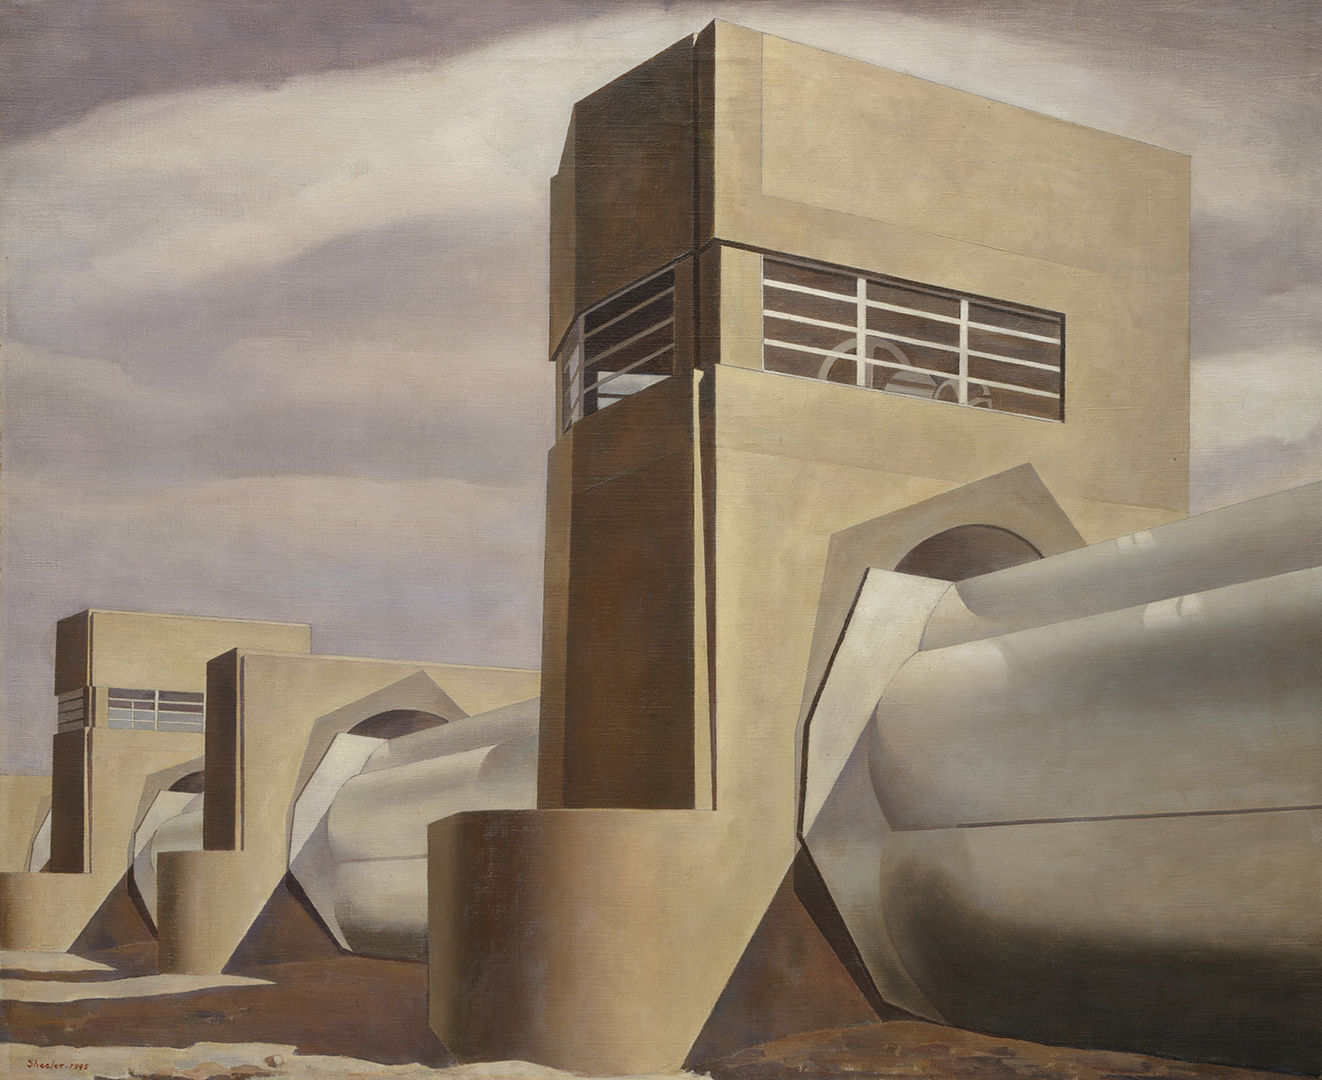 A hyper-realistic modern and austere painting of an industrial building with a cluster of huge white pipes that pierce tall stone towers